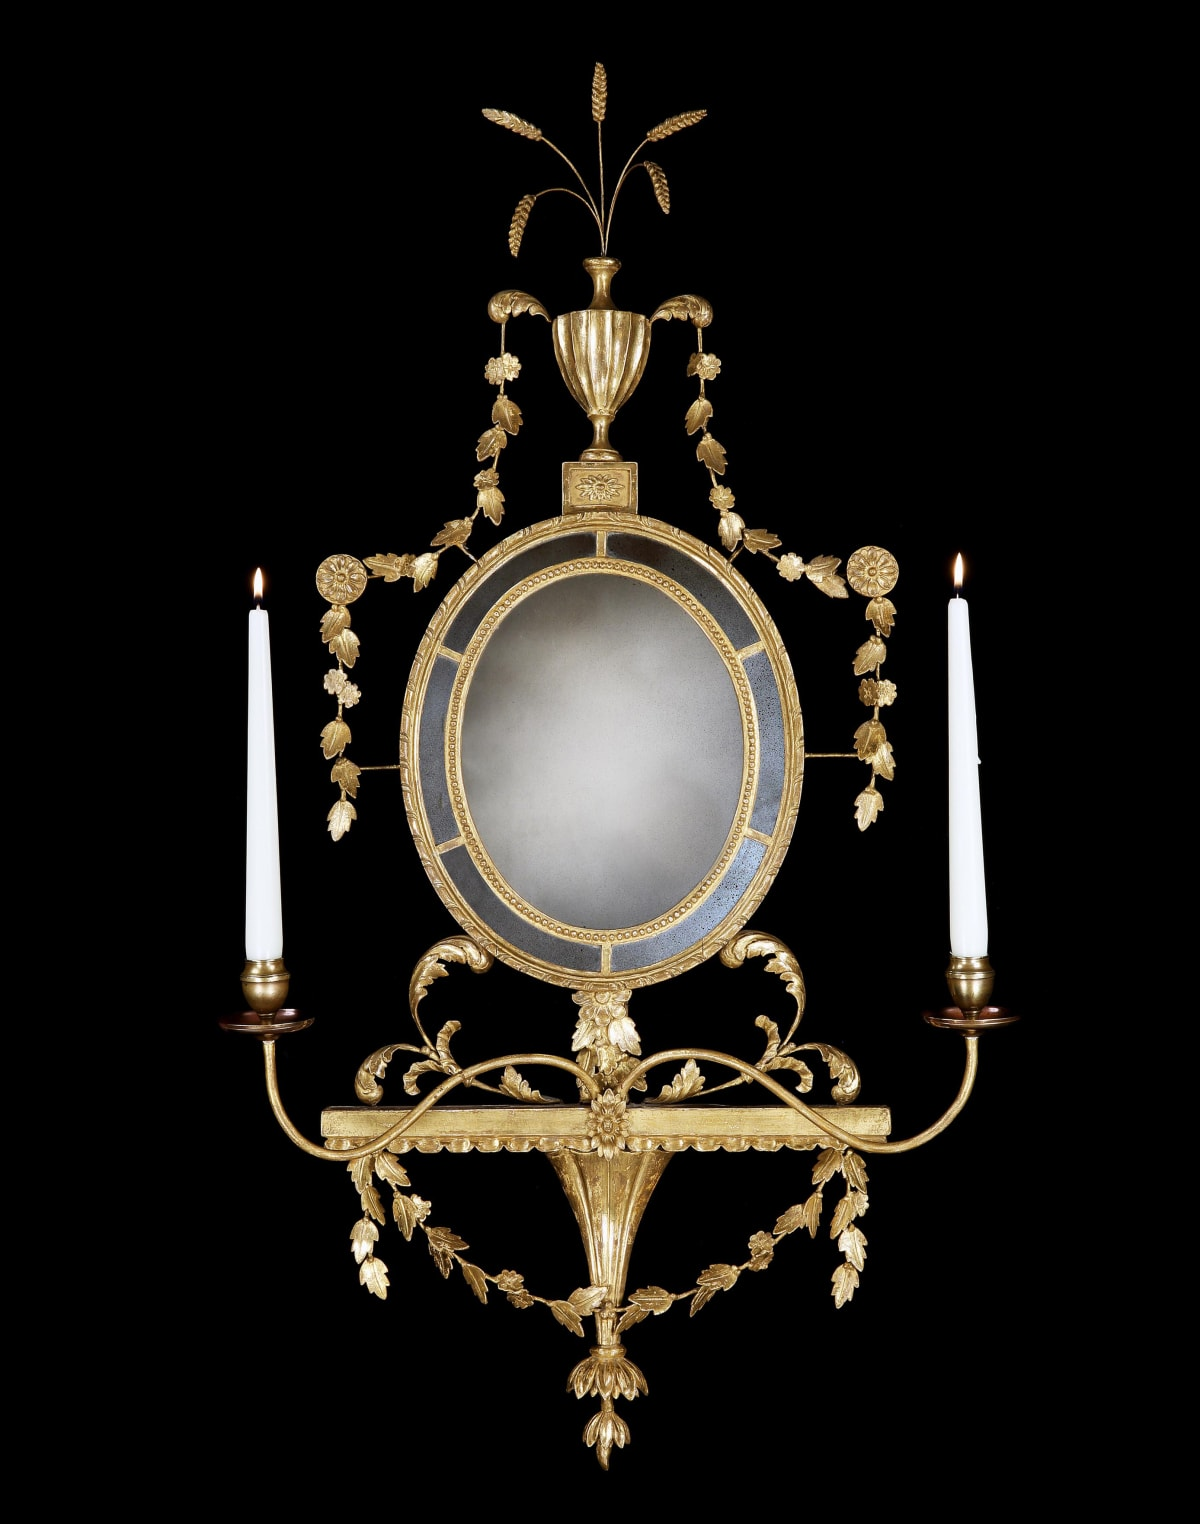 A GEORGE III GILTWOOD GIRANDOLE, ENGLISH, CIRCA1780